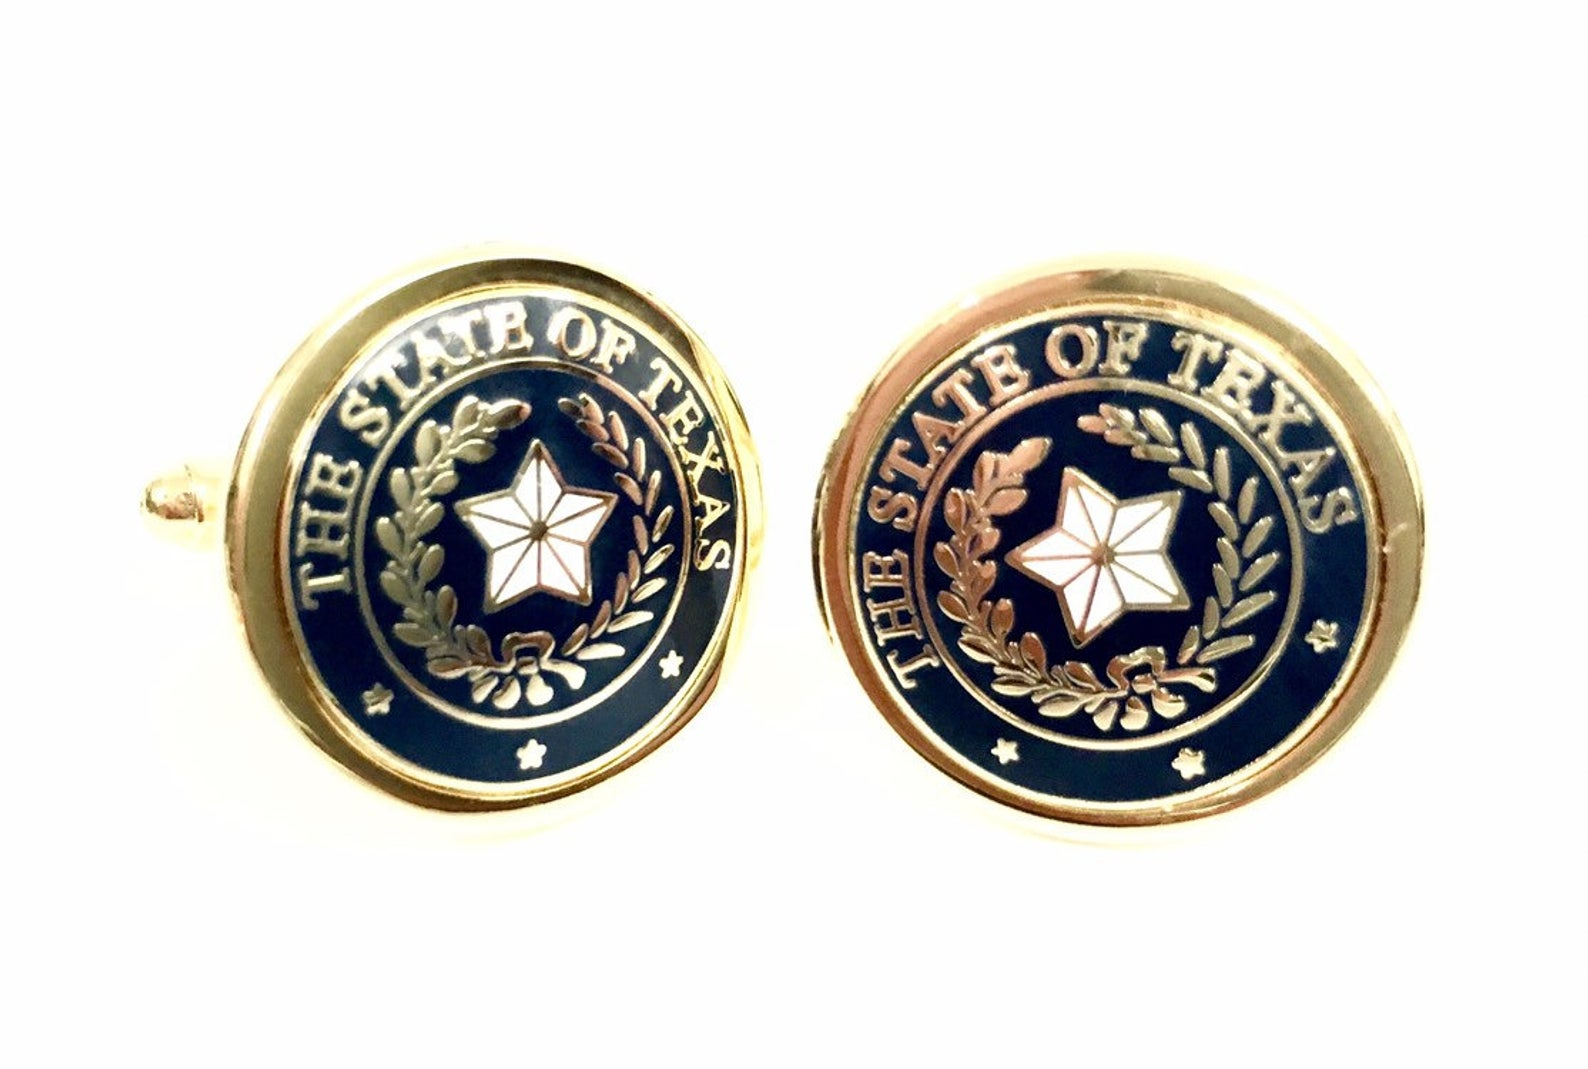 Cufflinks with the Texas State Seal - Navy & Gold